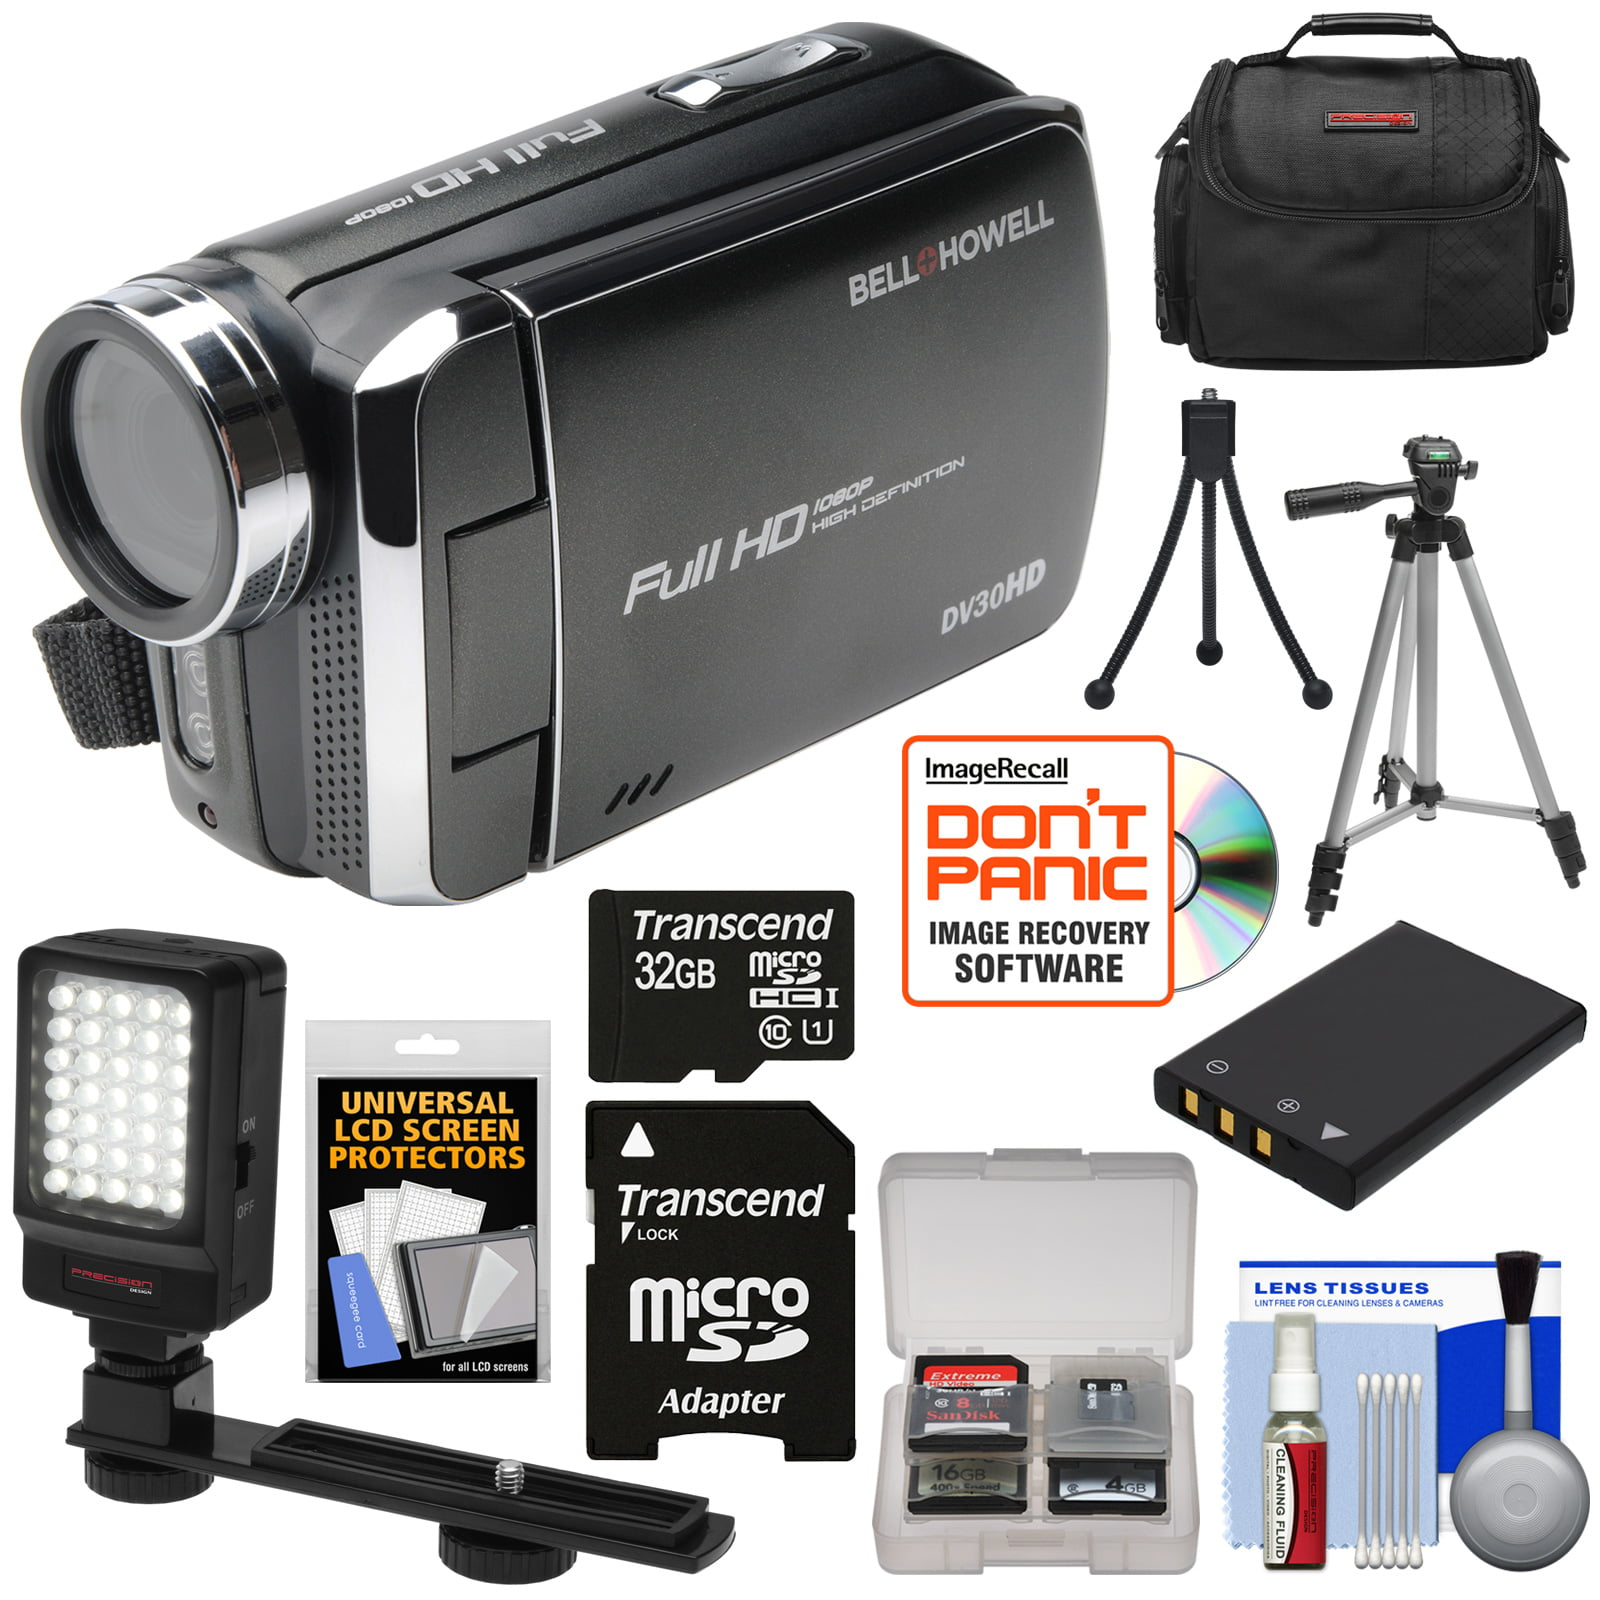 Bell & Howell DV30HD 1080p HD Video Camera Camcorder (Black) with 32GB Card + Battery + Case + ...